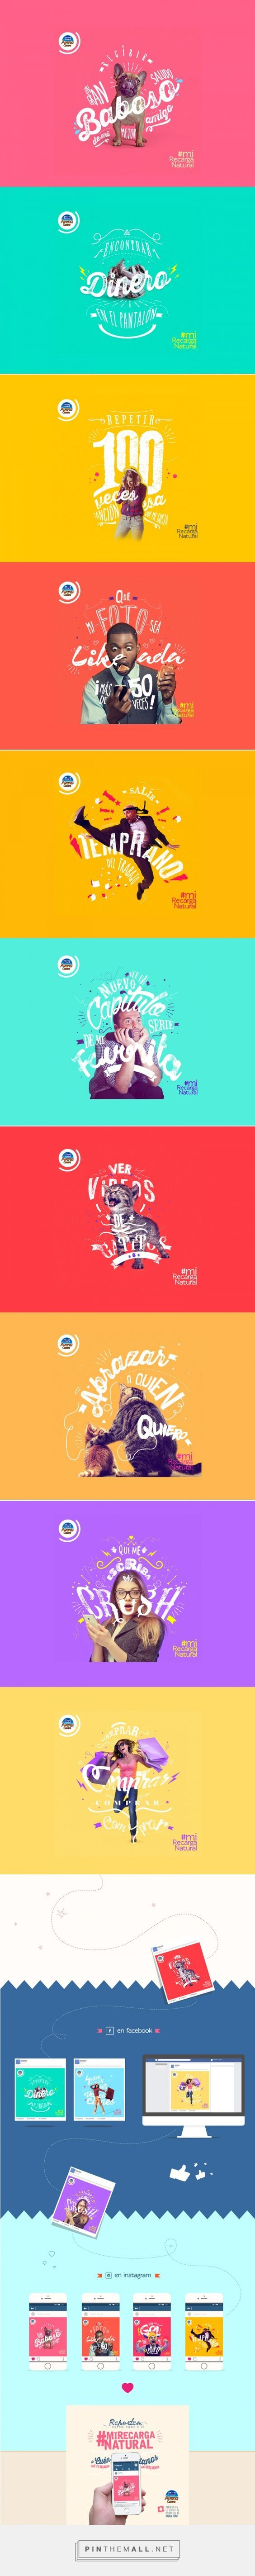 376 best Design is everything images on Pinterest